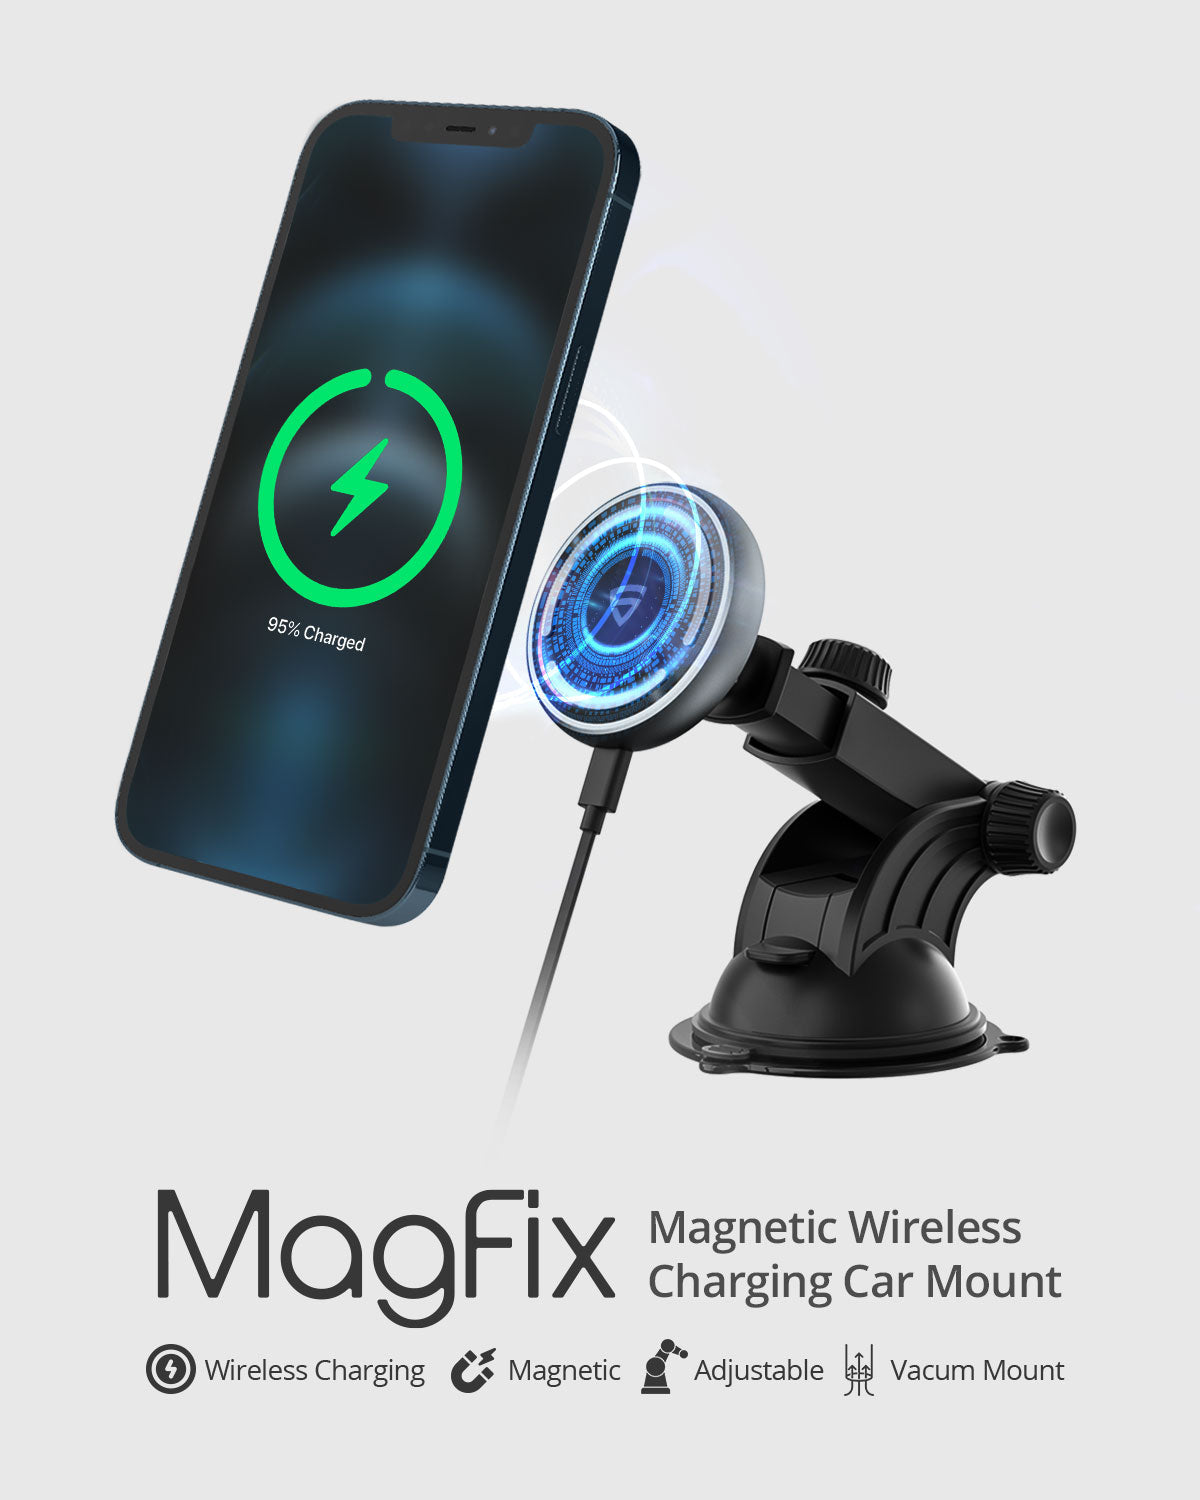 RAEGR MagFix Arc M1310 Adjustable Telescopic Wireless Car Charger